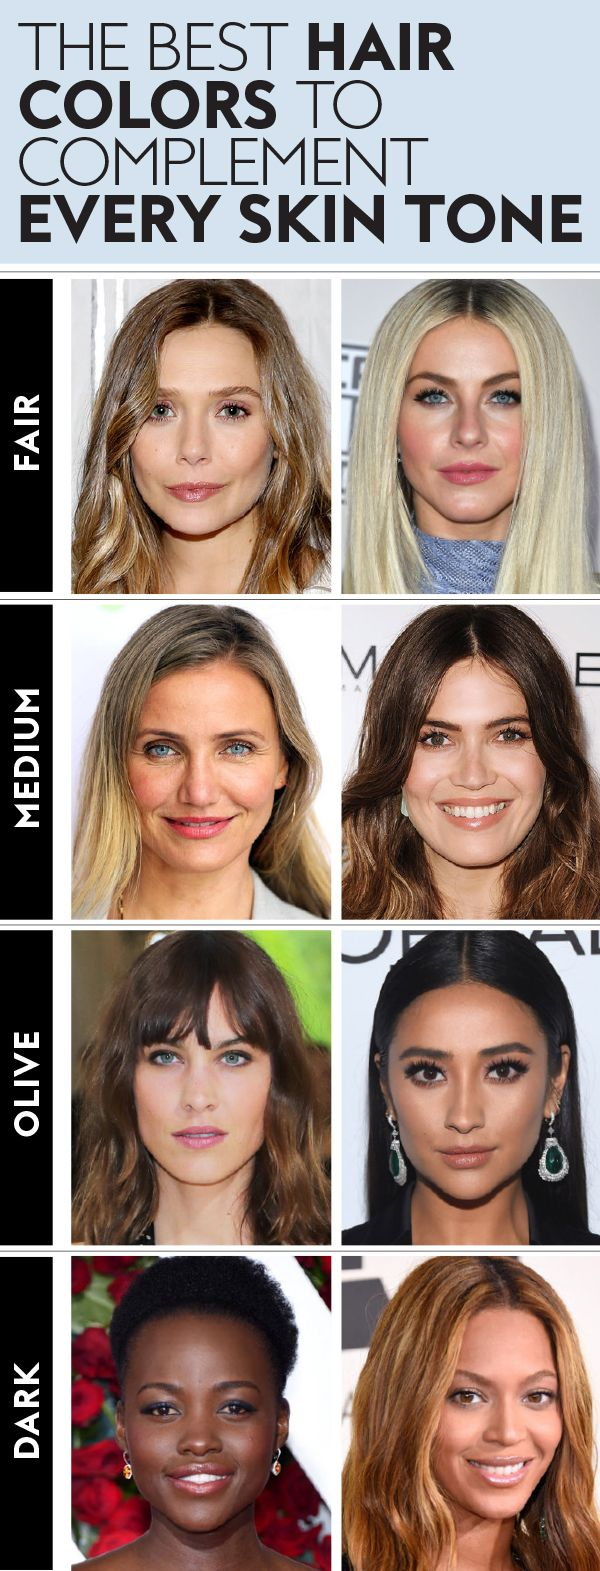 Find The Best Hair Color For Your Skin Tone Not Sure What Shade To Ask Your Colorist For A Skin Tone Hair Color Pale Skin Hair Color Hair Color For